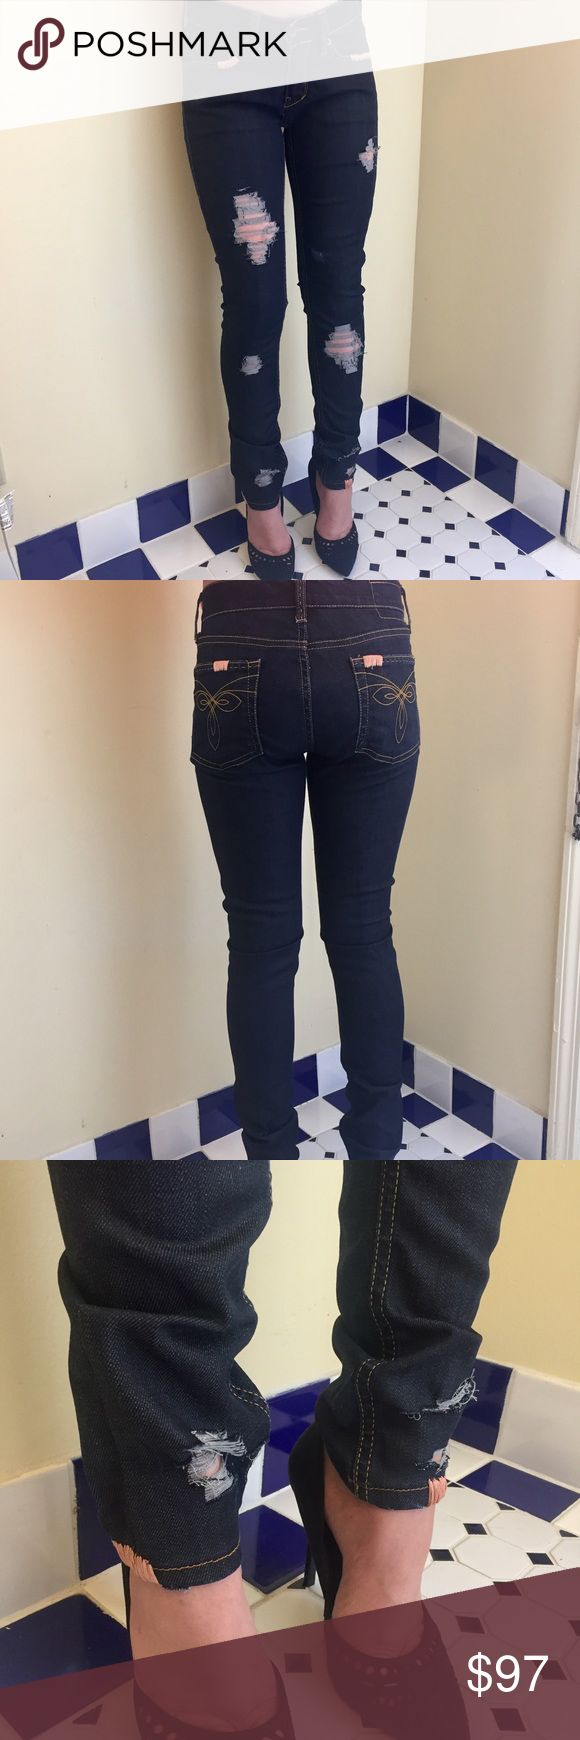 """Distressed Dark Wash Skinny Jeans Sexy, dark wash skinny jeans. These are Ted Baker jeans that have been hand distressed and upcycled. From boring bootcut to on-trend skinnies! Rose gold embroidery thread accents. Size 0 Rise-7""""  Inseam-28.5""""  Waist-25"""" (62417) Ted Baker Jeans Skinny"""